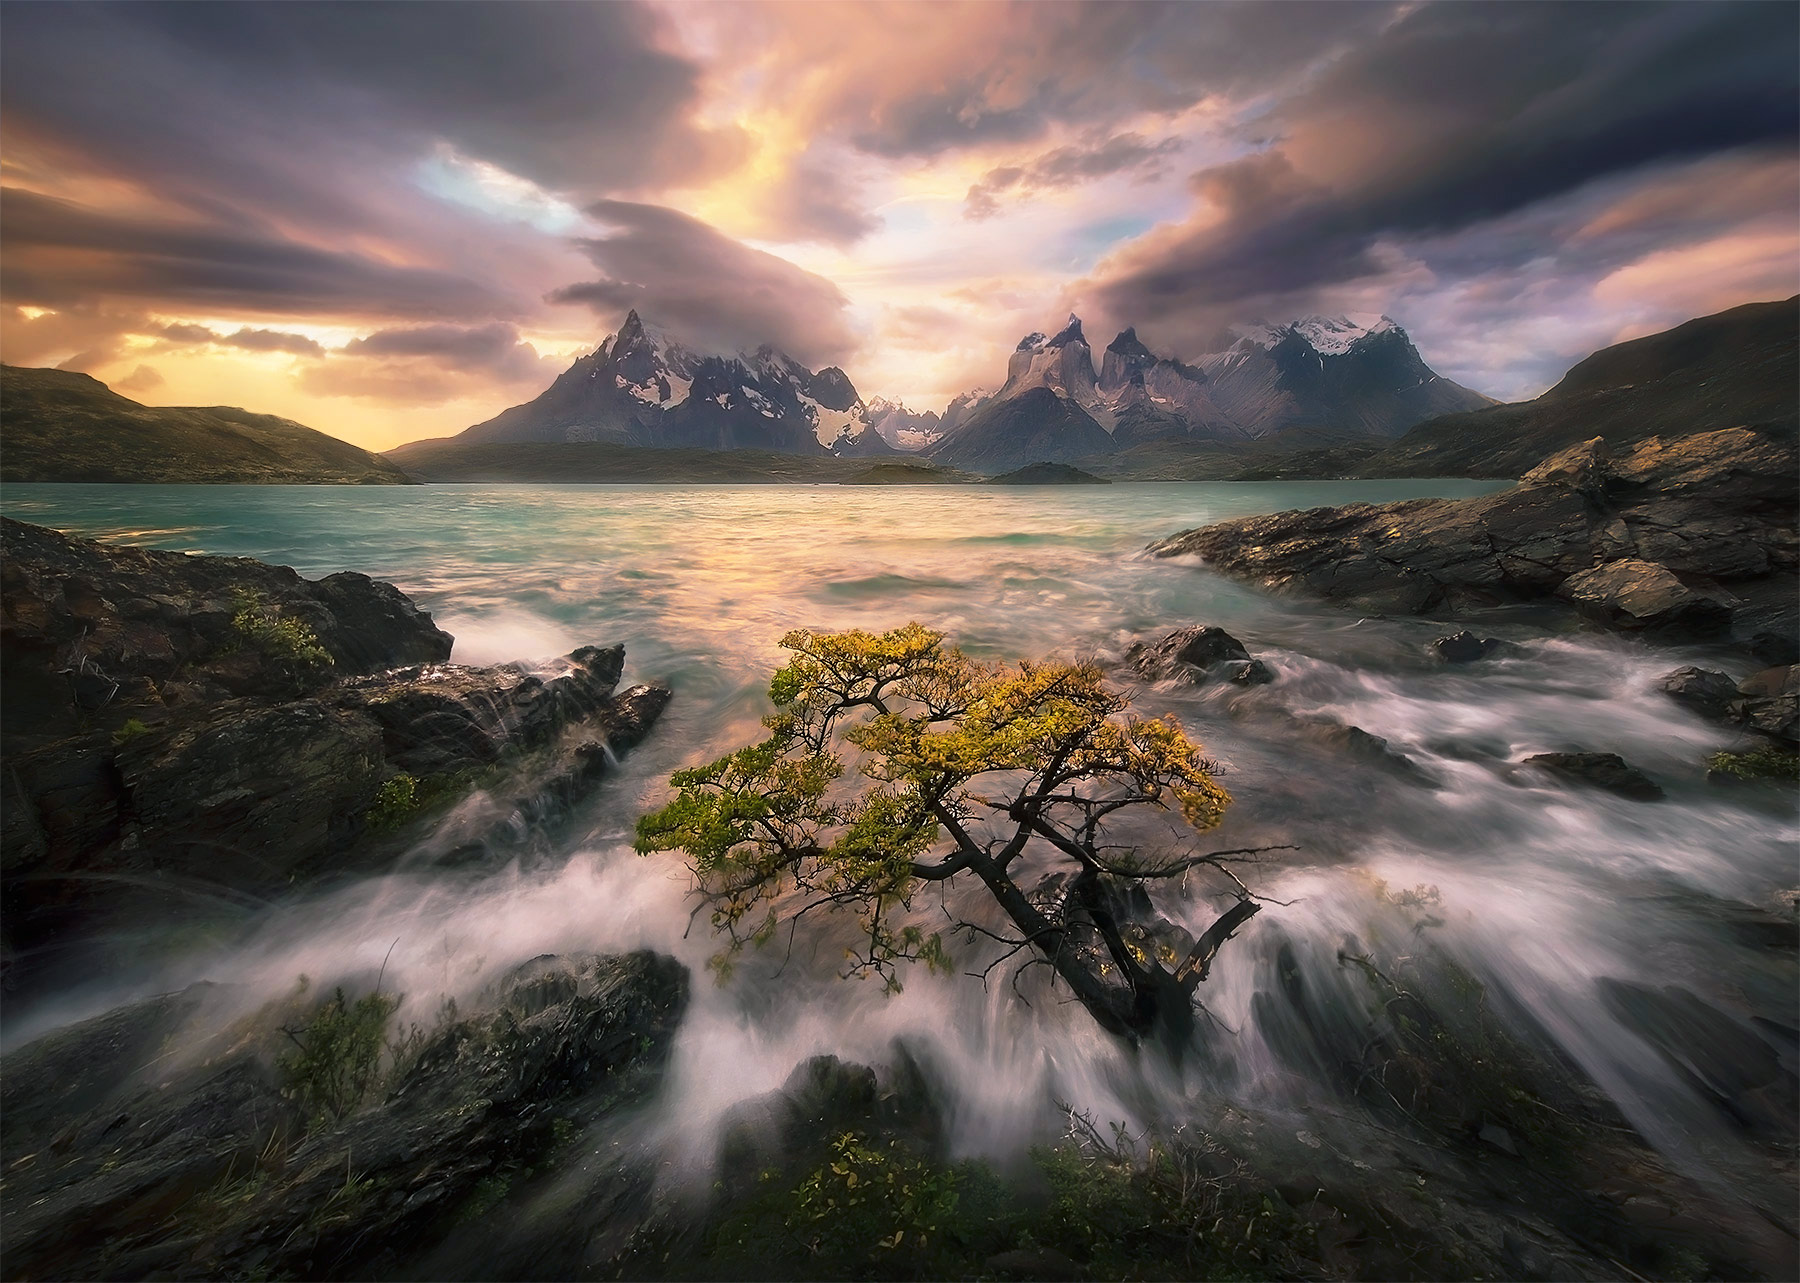 A lone tree in the waves beneath the high peaks of Torres Del Paine, Chile.